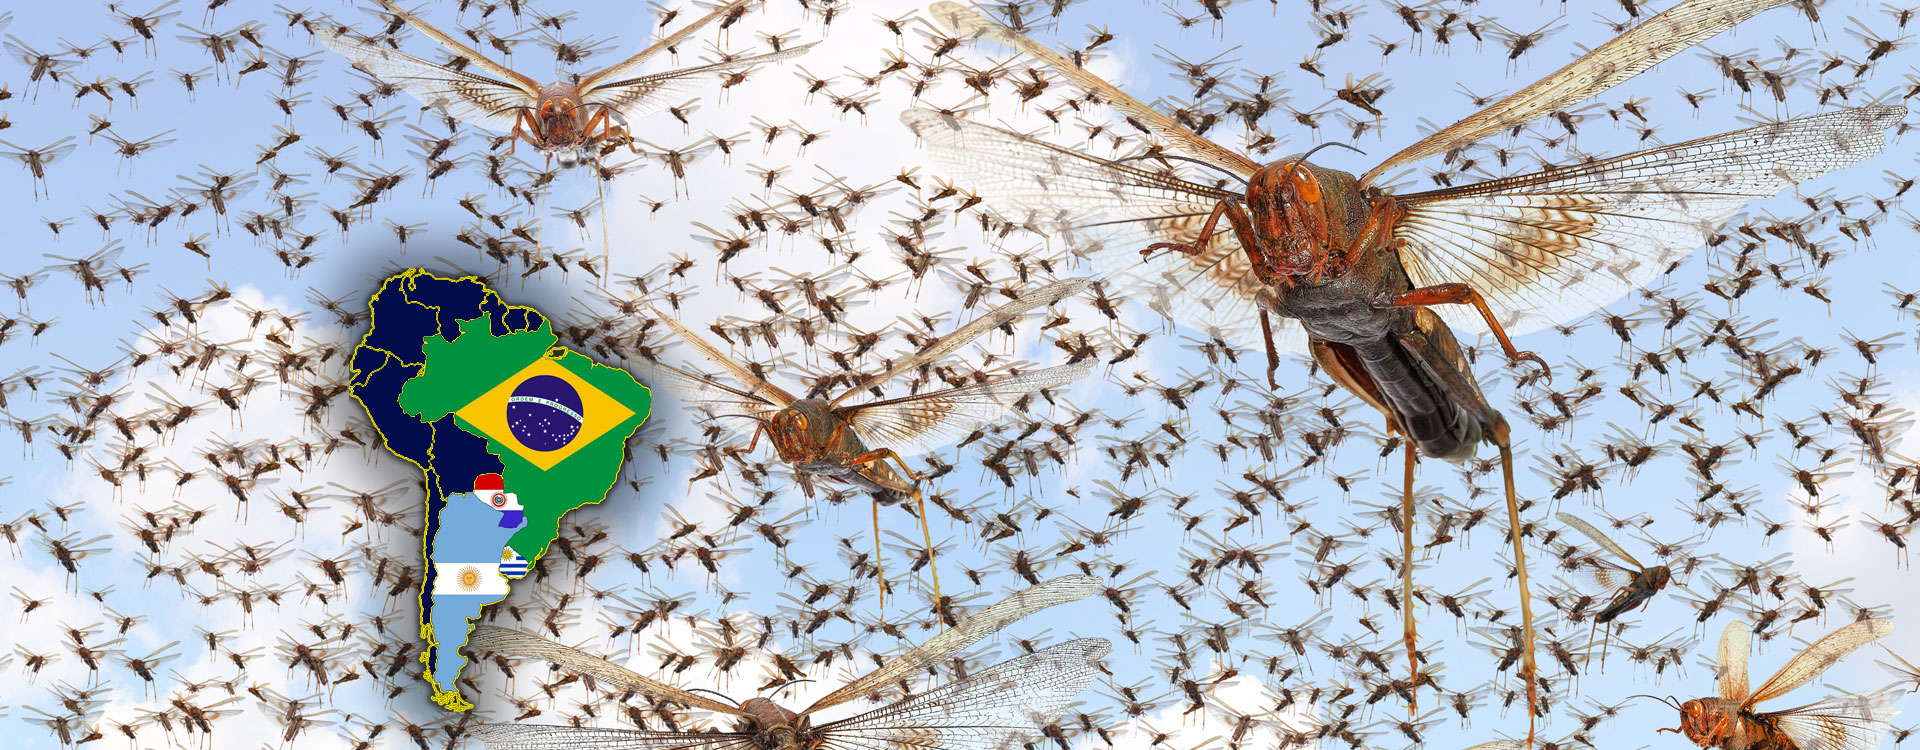 Locusts swarming and a map showing Brazil Argentina Uruguay and Paraguay